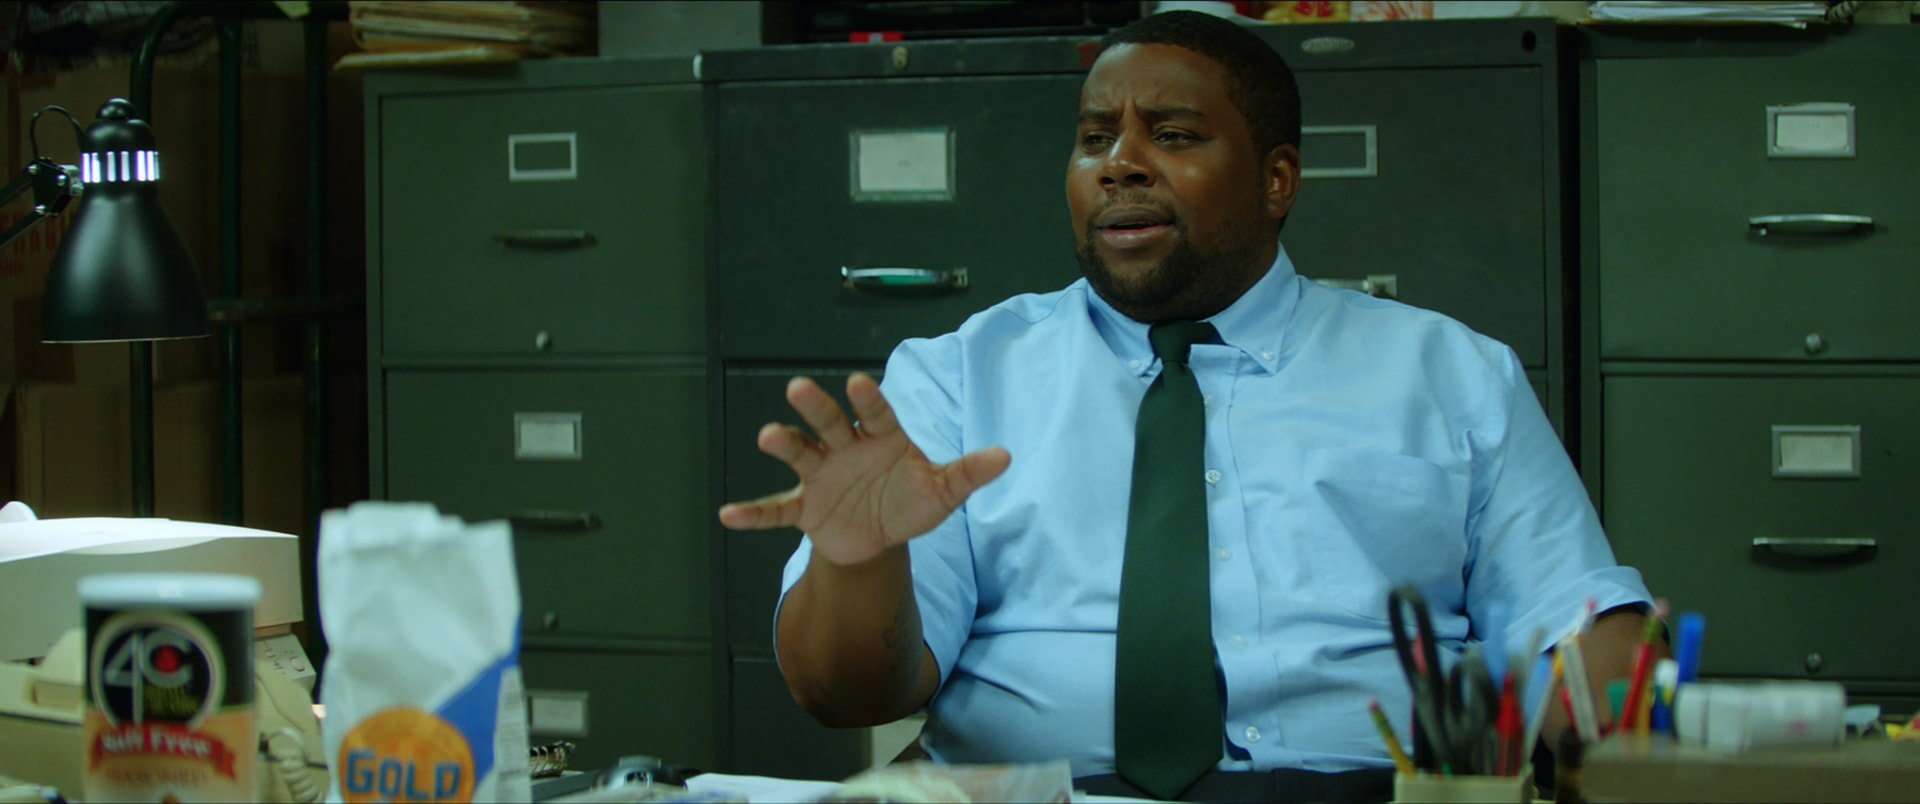 "KENAN THOMPSON as Manager Keith Schonfeld in the New Line Cinema and Village Roadshow comedy ""GOING IN STYLE,"" a Warner Bros. Pictures release."